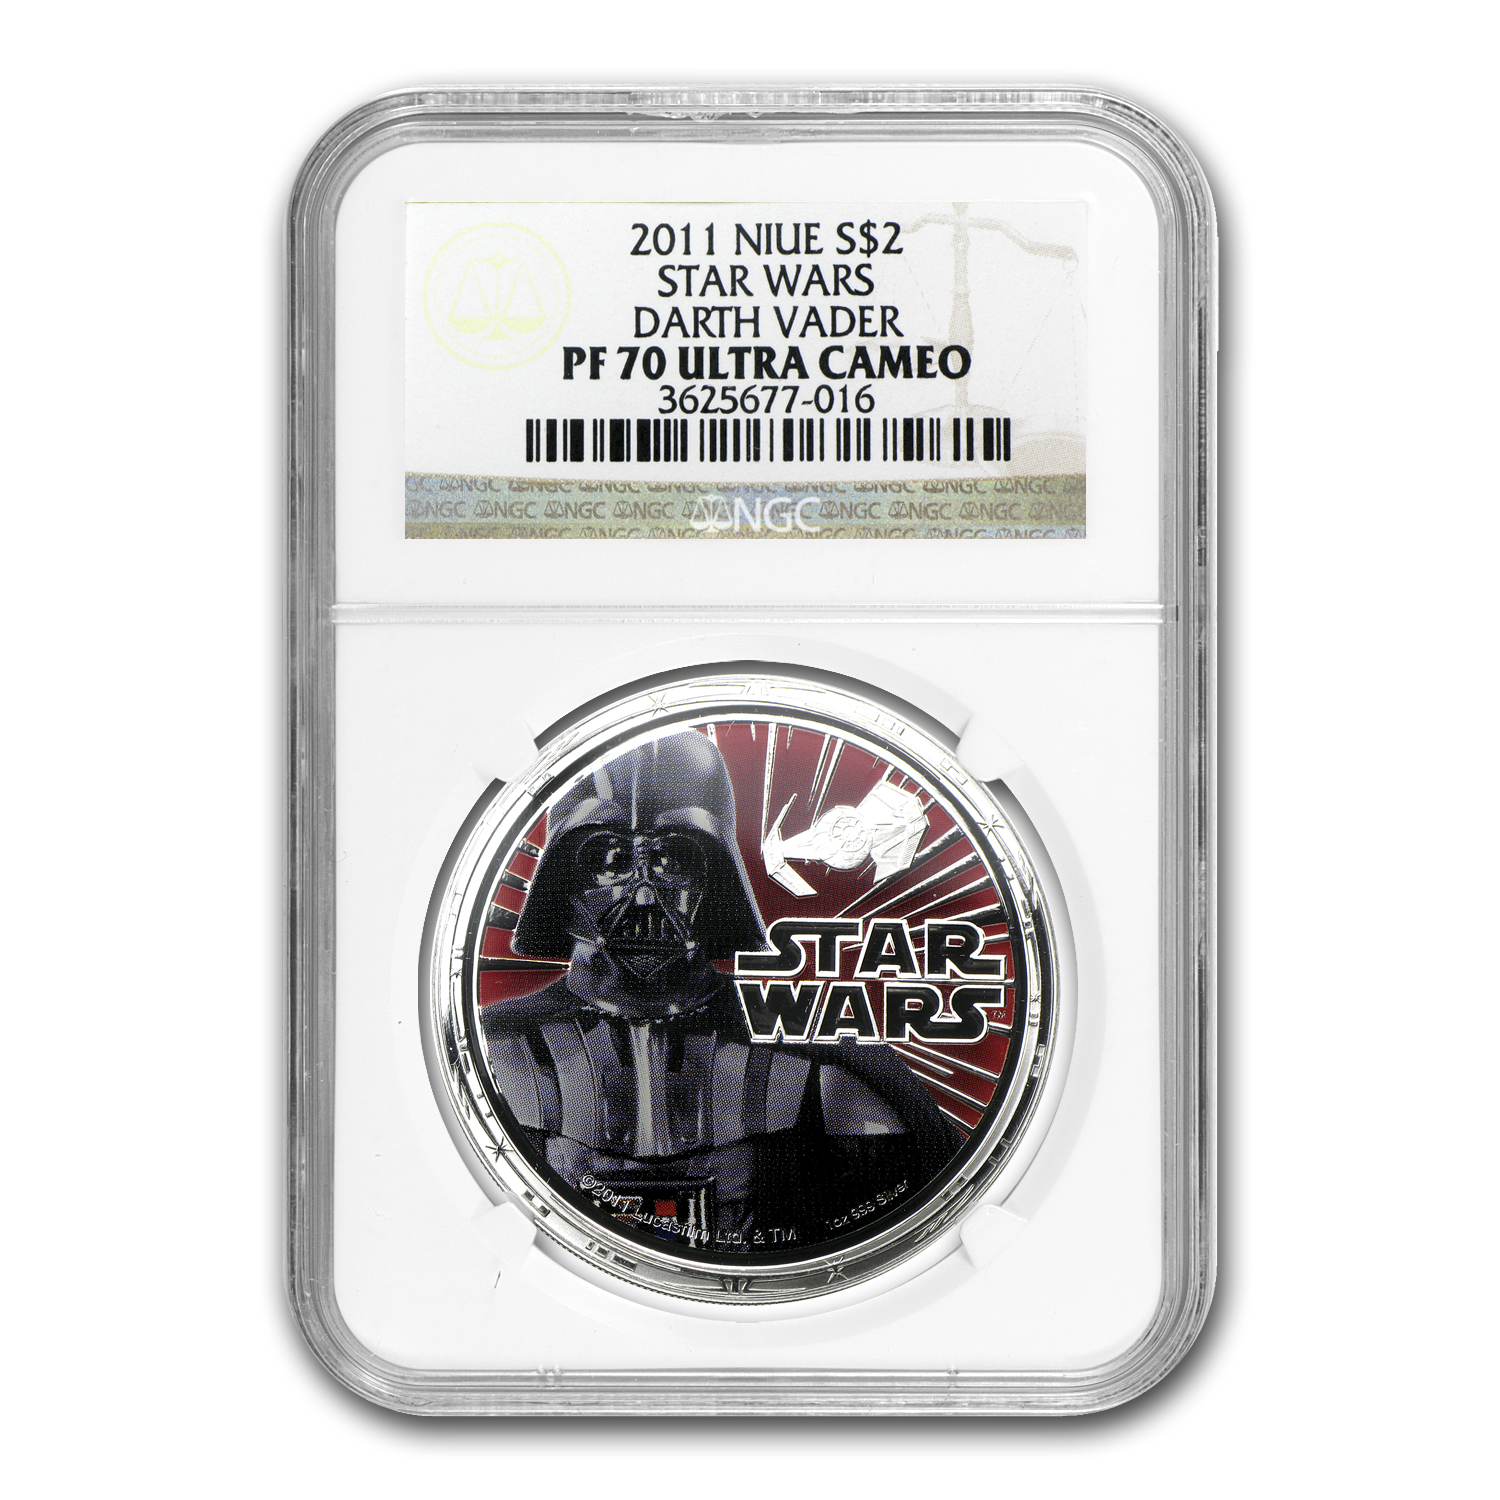 2011 1 oz Silver $2 Niue Star Wars Darth Vader PF-70 NGC